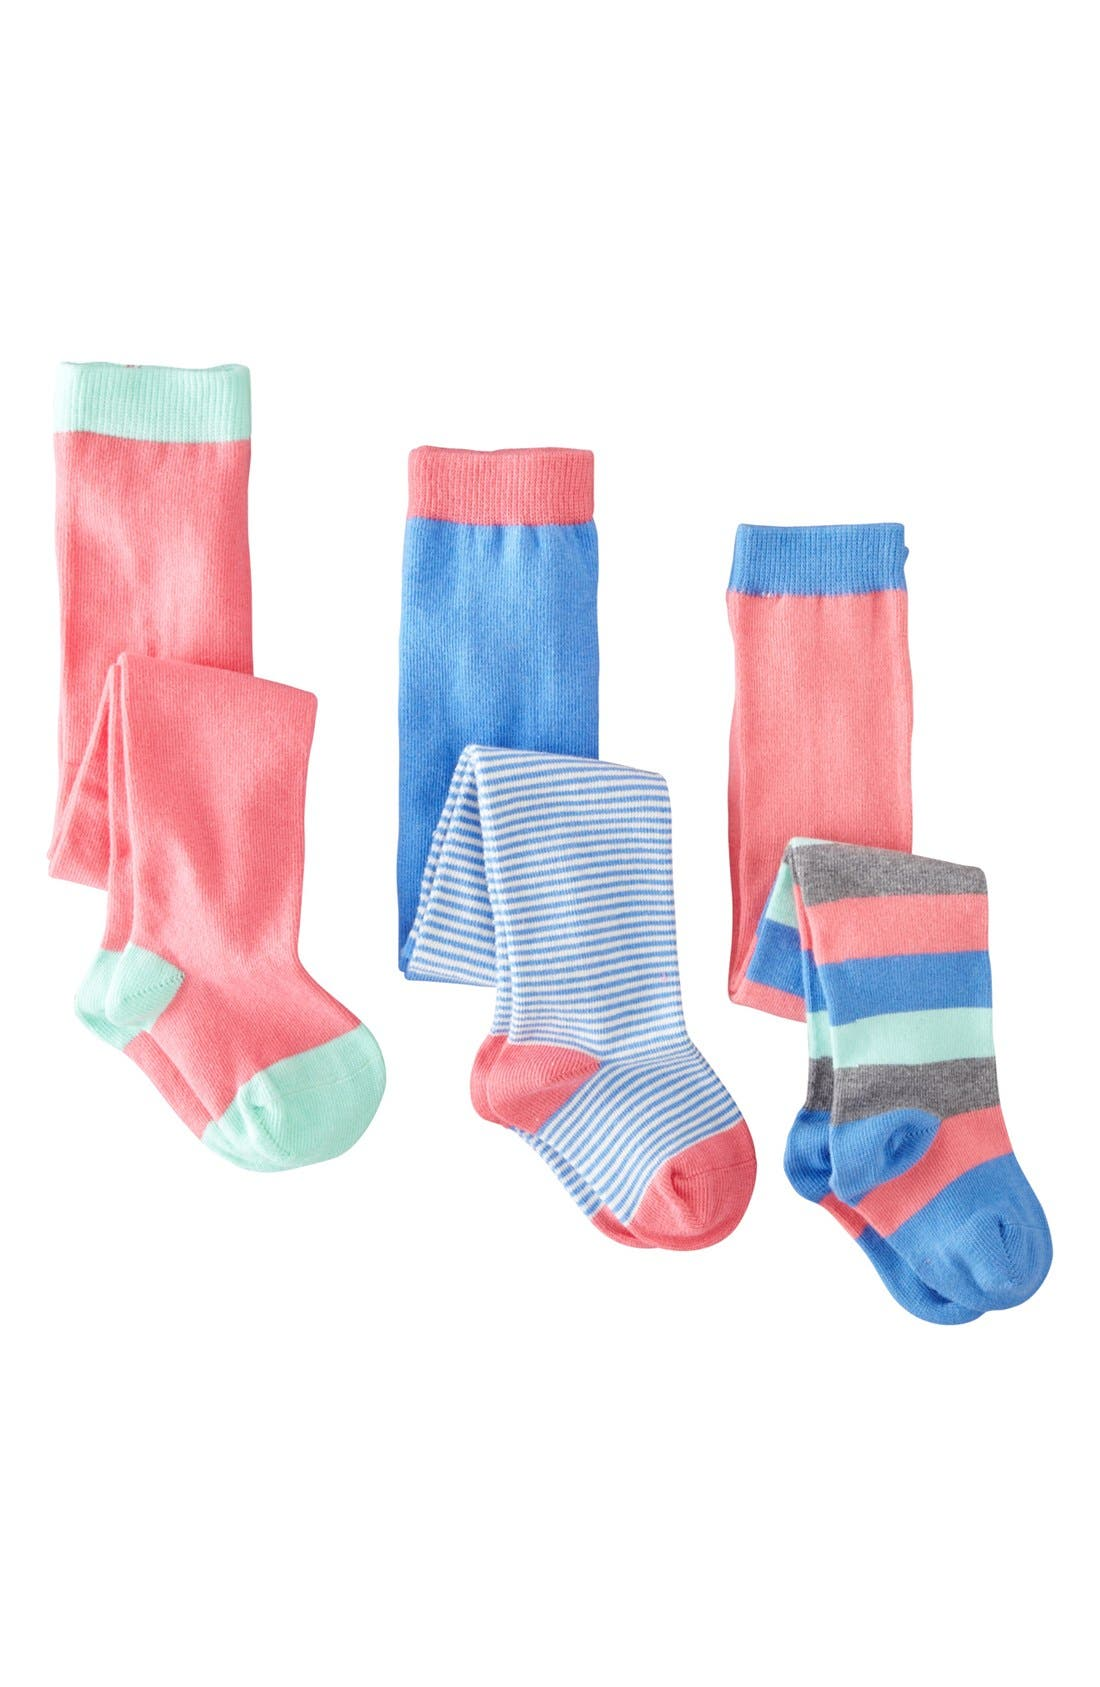 Alternate Image 1 Selected - Mini Boden Patterned Tights (3-Pack) (Baby Girls & Toddler Girls)